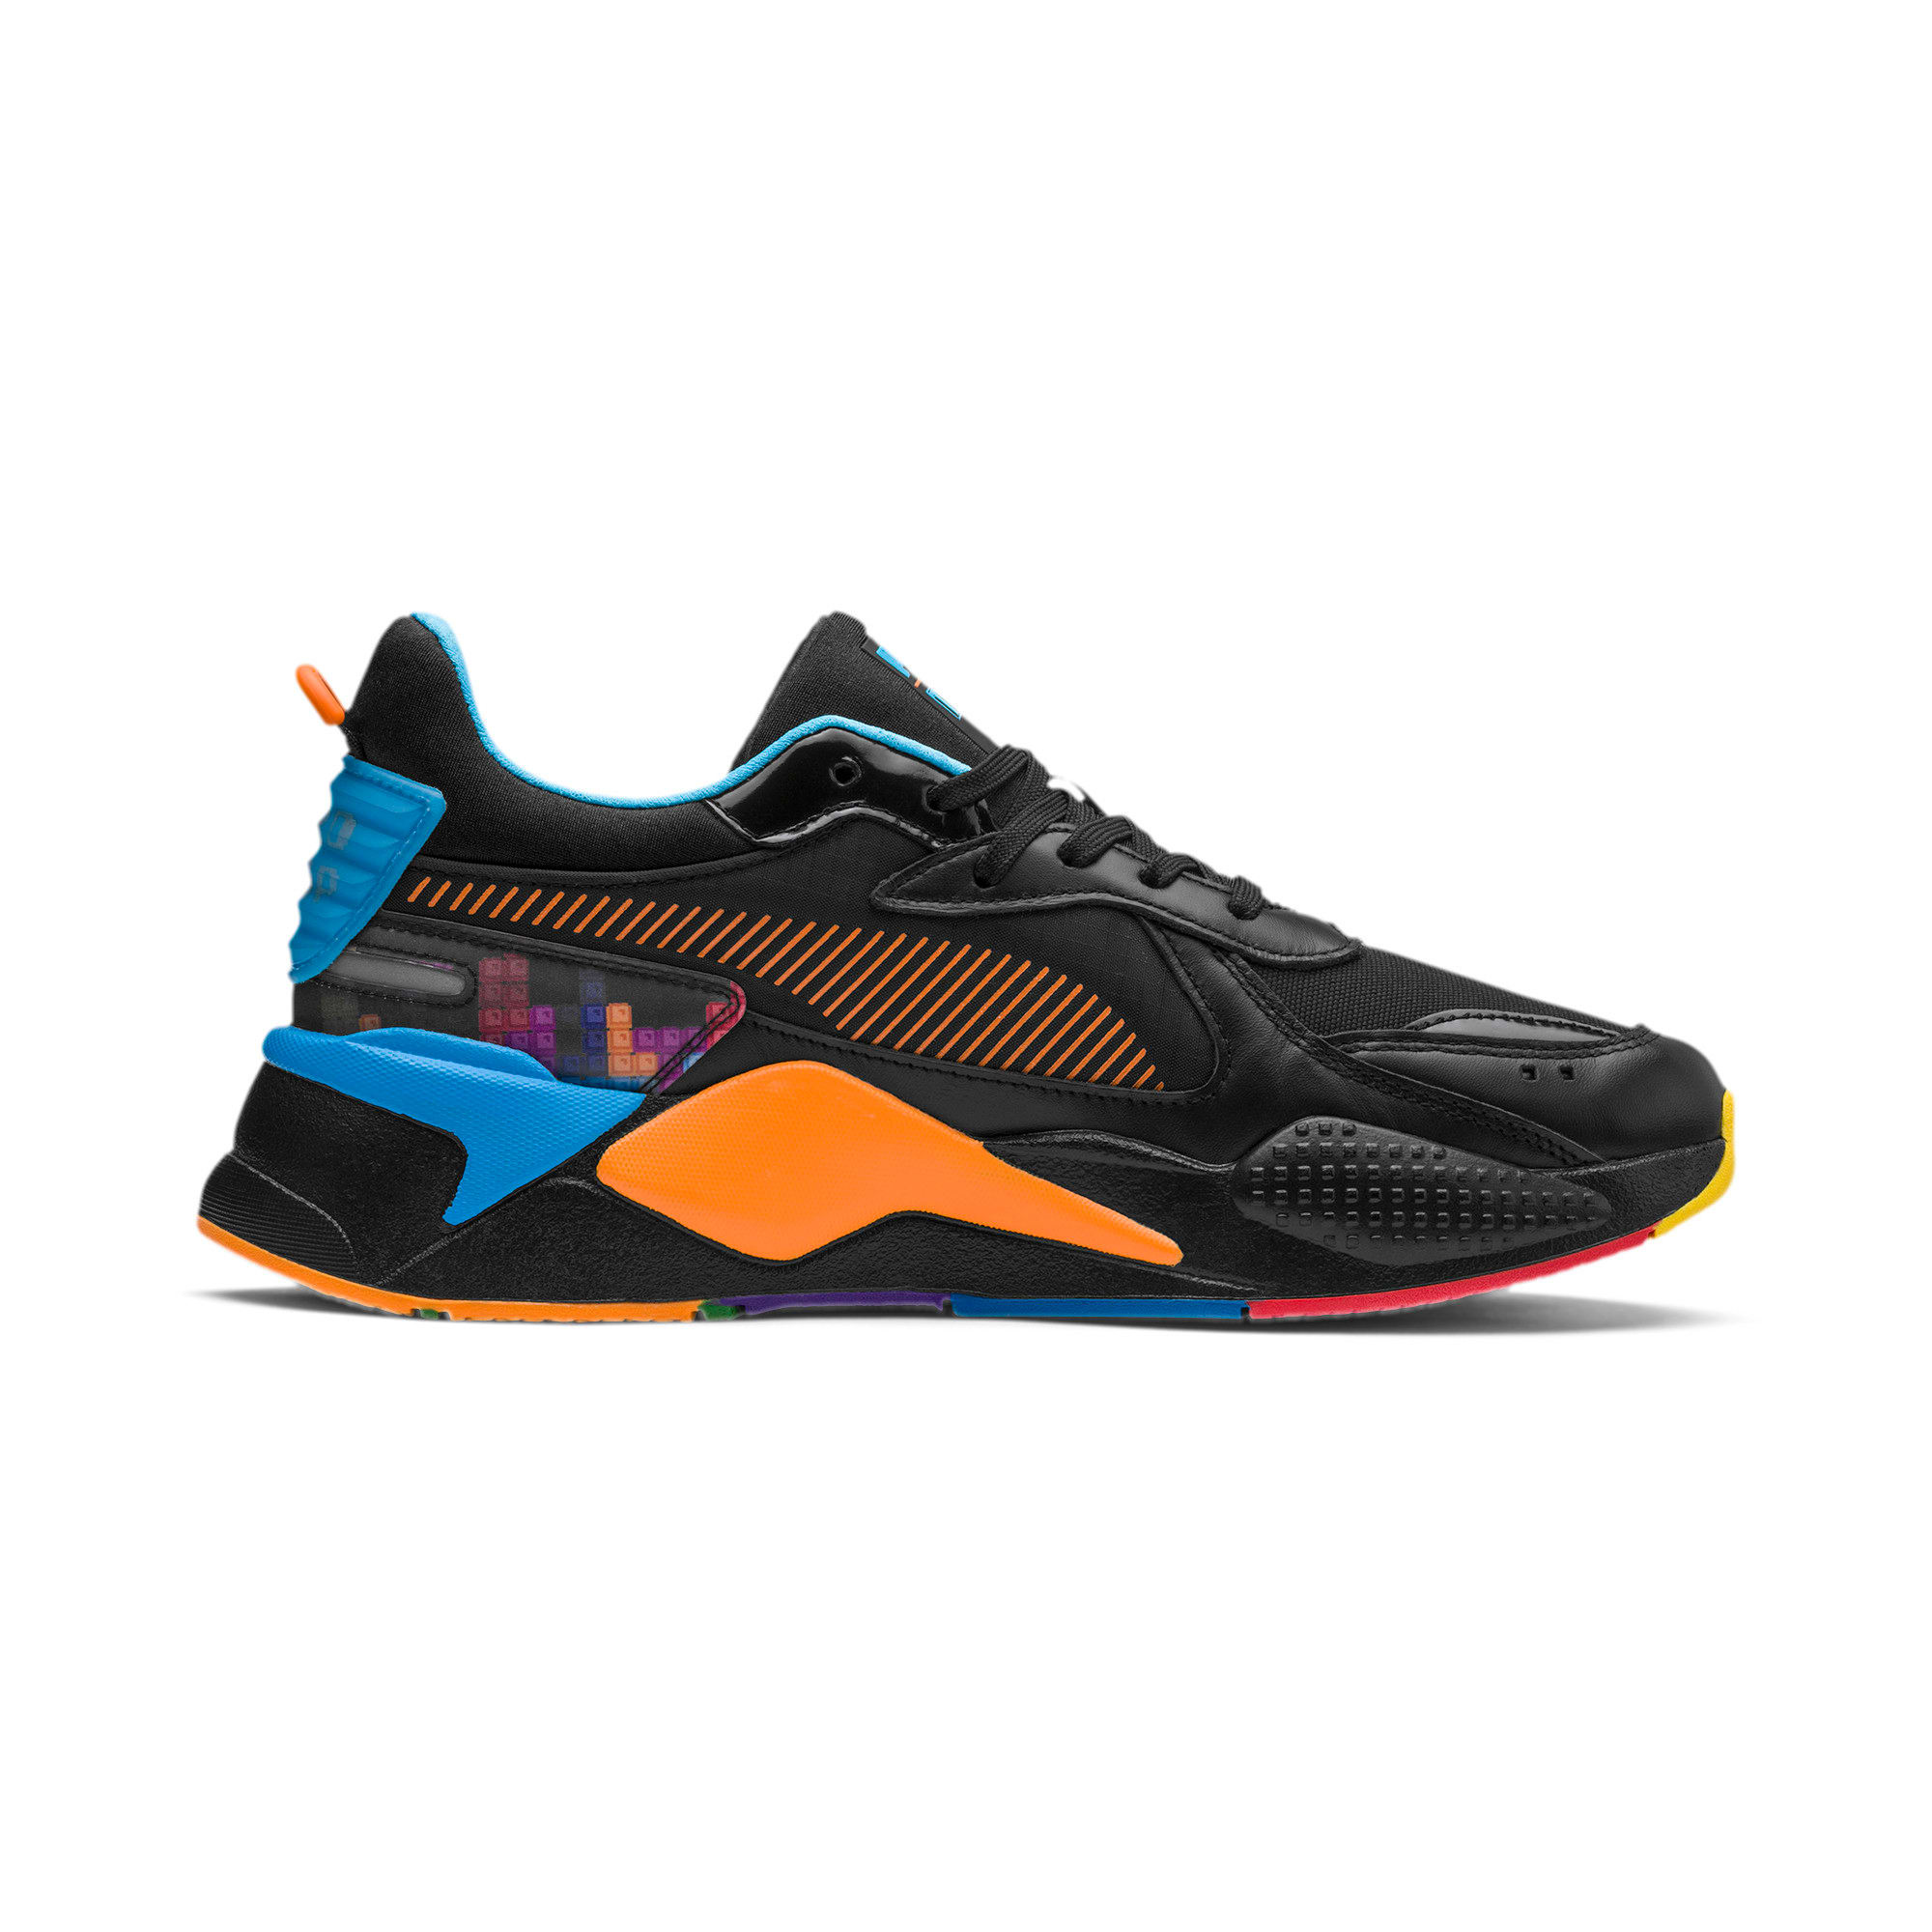 Thumbnail 5 of PUMA x TETRIS RS-X スニーカー, Puma Black-Luminous Blue, medium-JPN